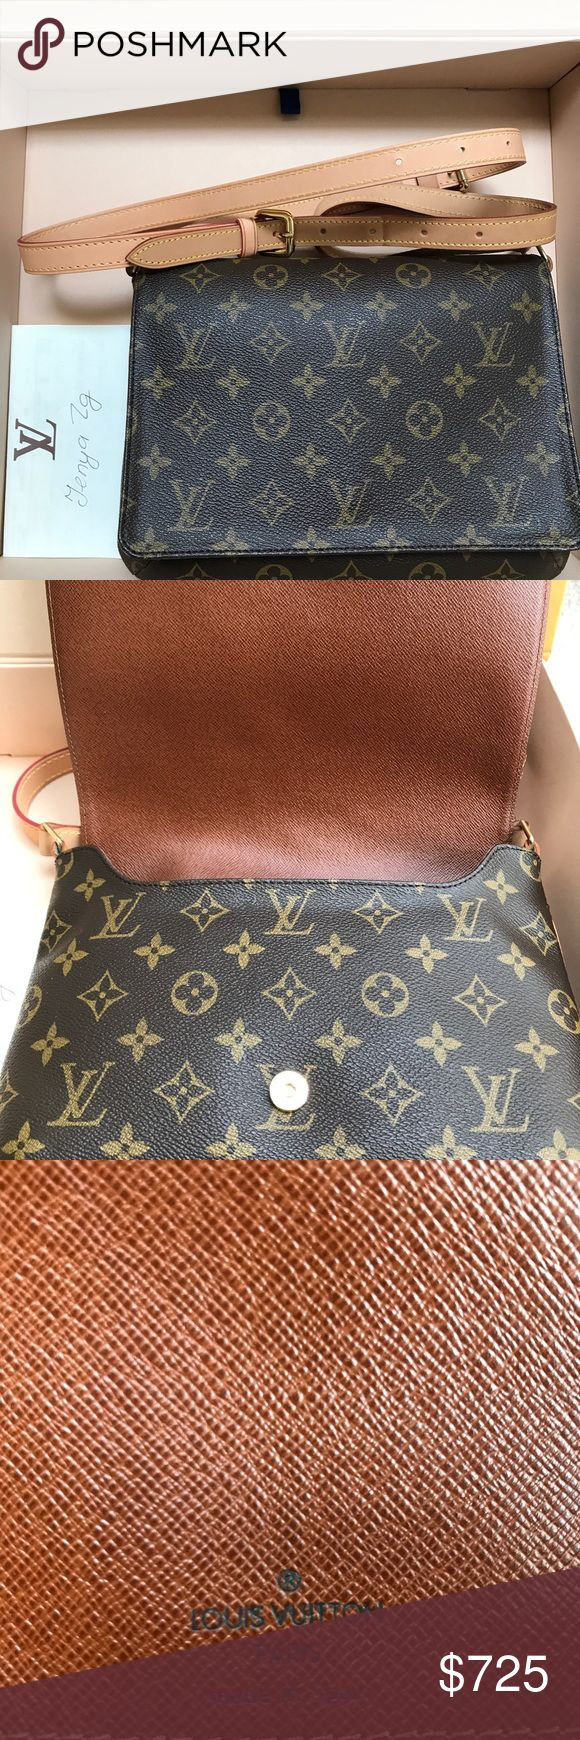 "Authentic Louis Vuitton Musette Tango Crossbody Excellent condition! Extra piece of strap thats non LV is added for crossbody option, blends in very well, NO TRADES sorry. 630$ on p. Will also include a non lv 47"" chain for dressier look Louis Vuitton Bags Crossbody Bags"